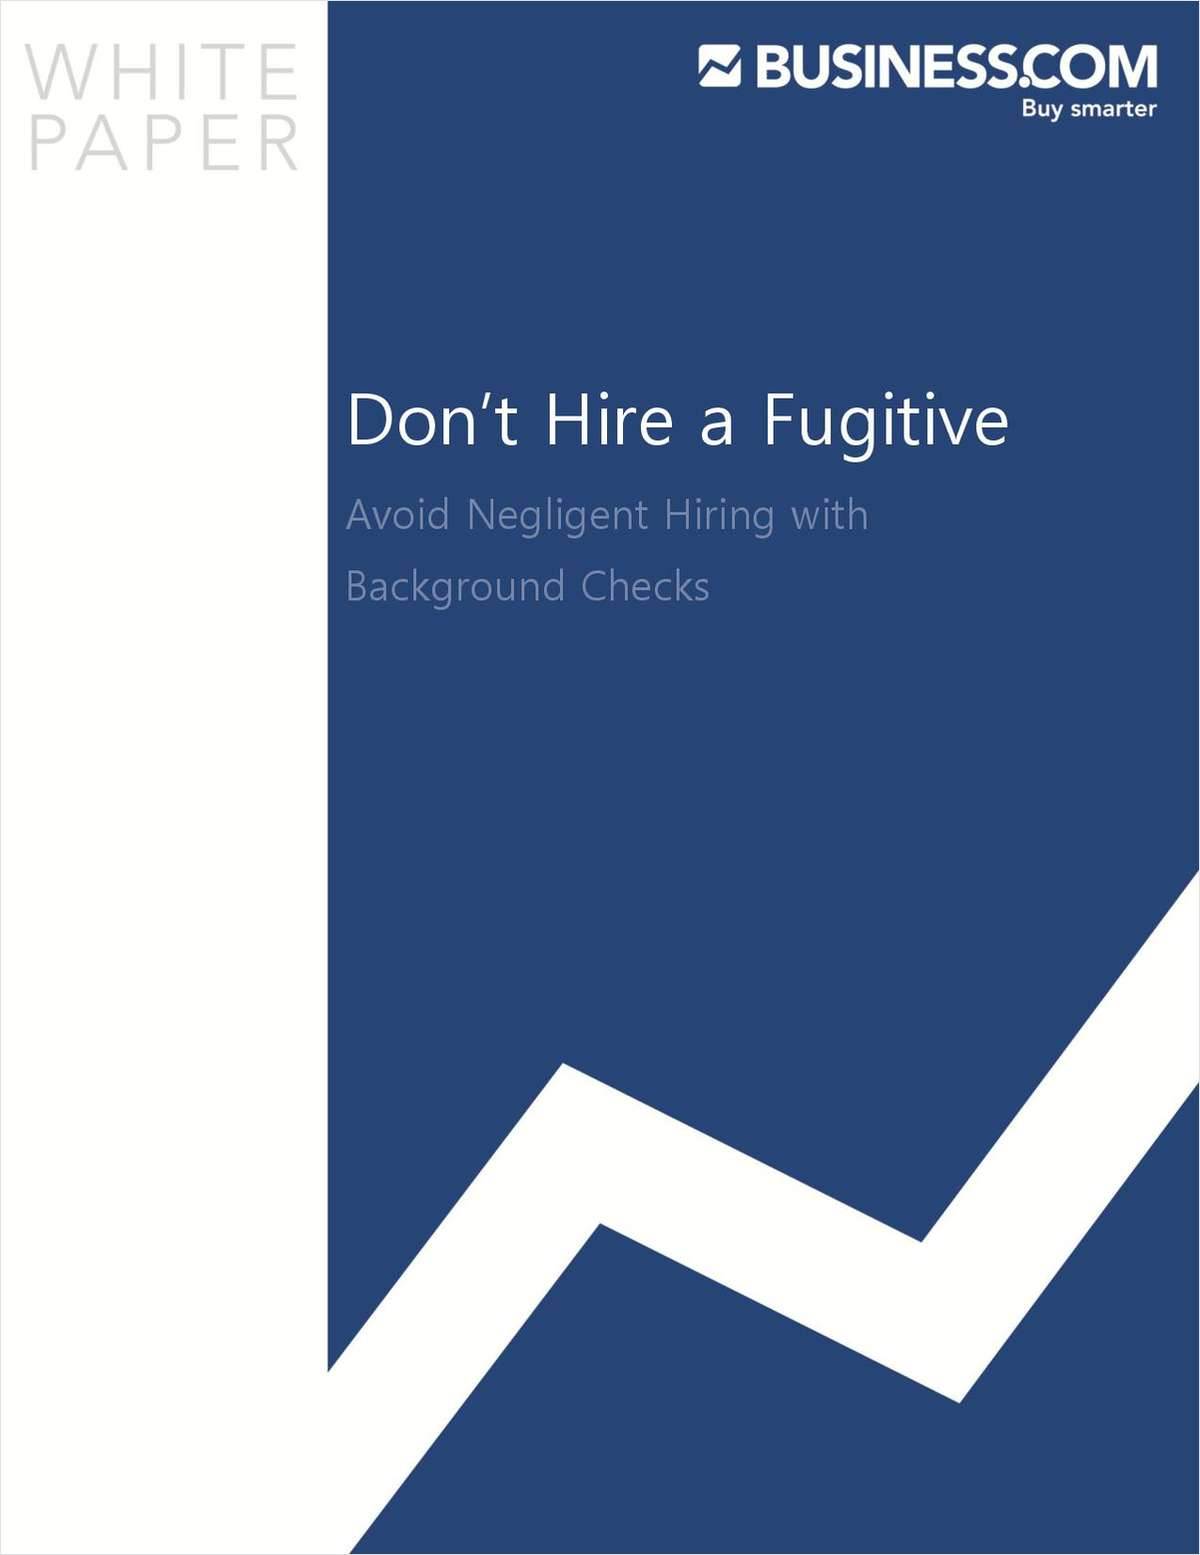 Avoid Negligent Hiring with Background Checks